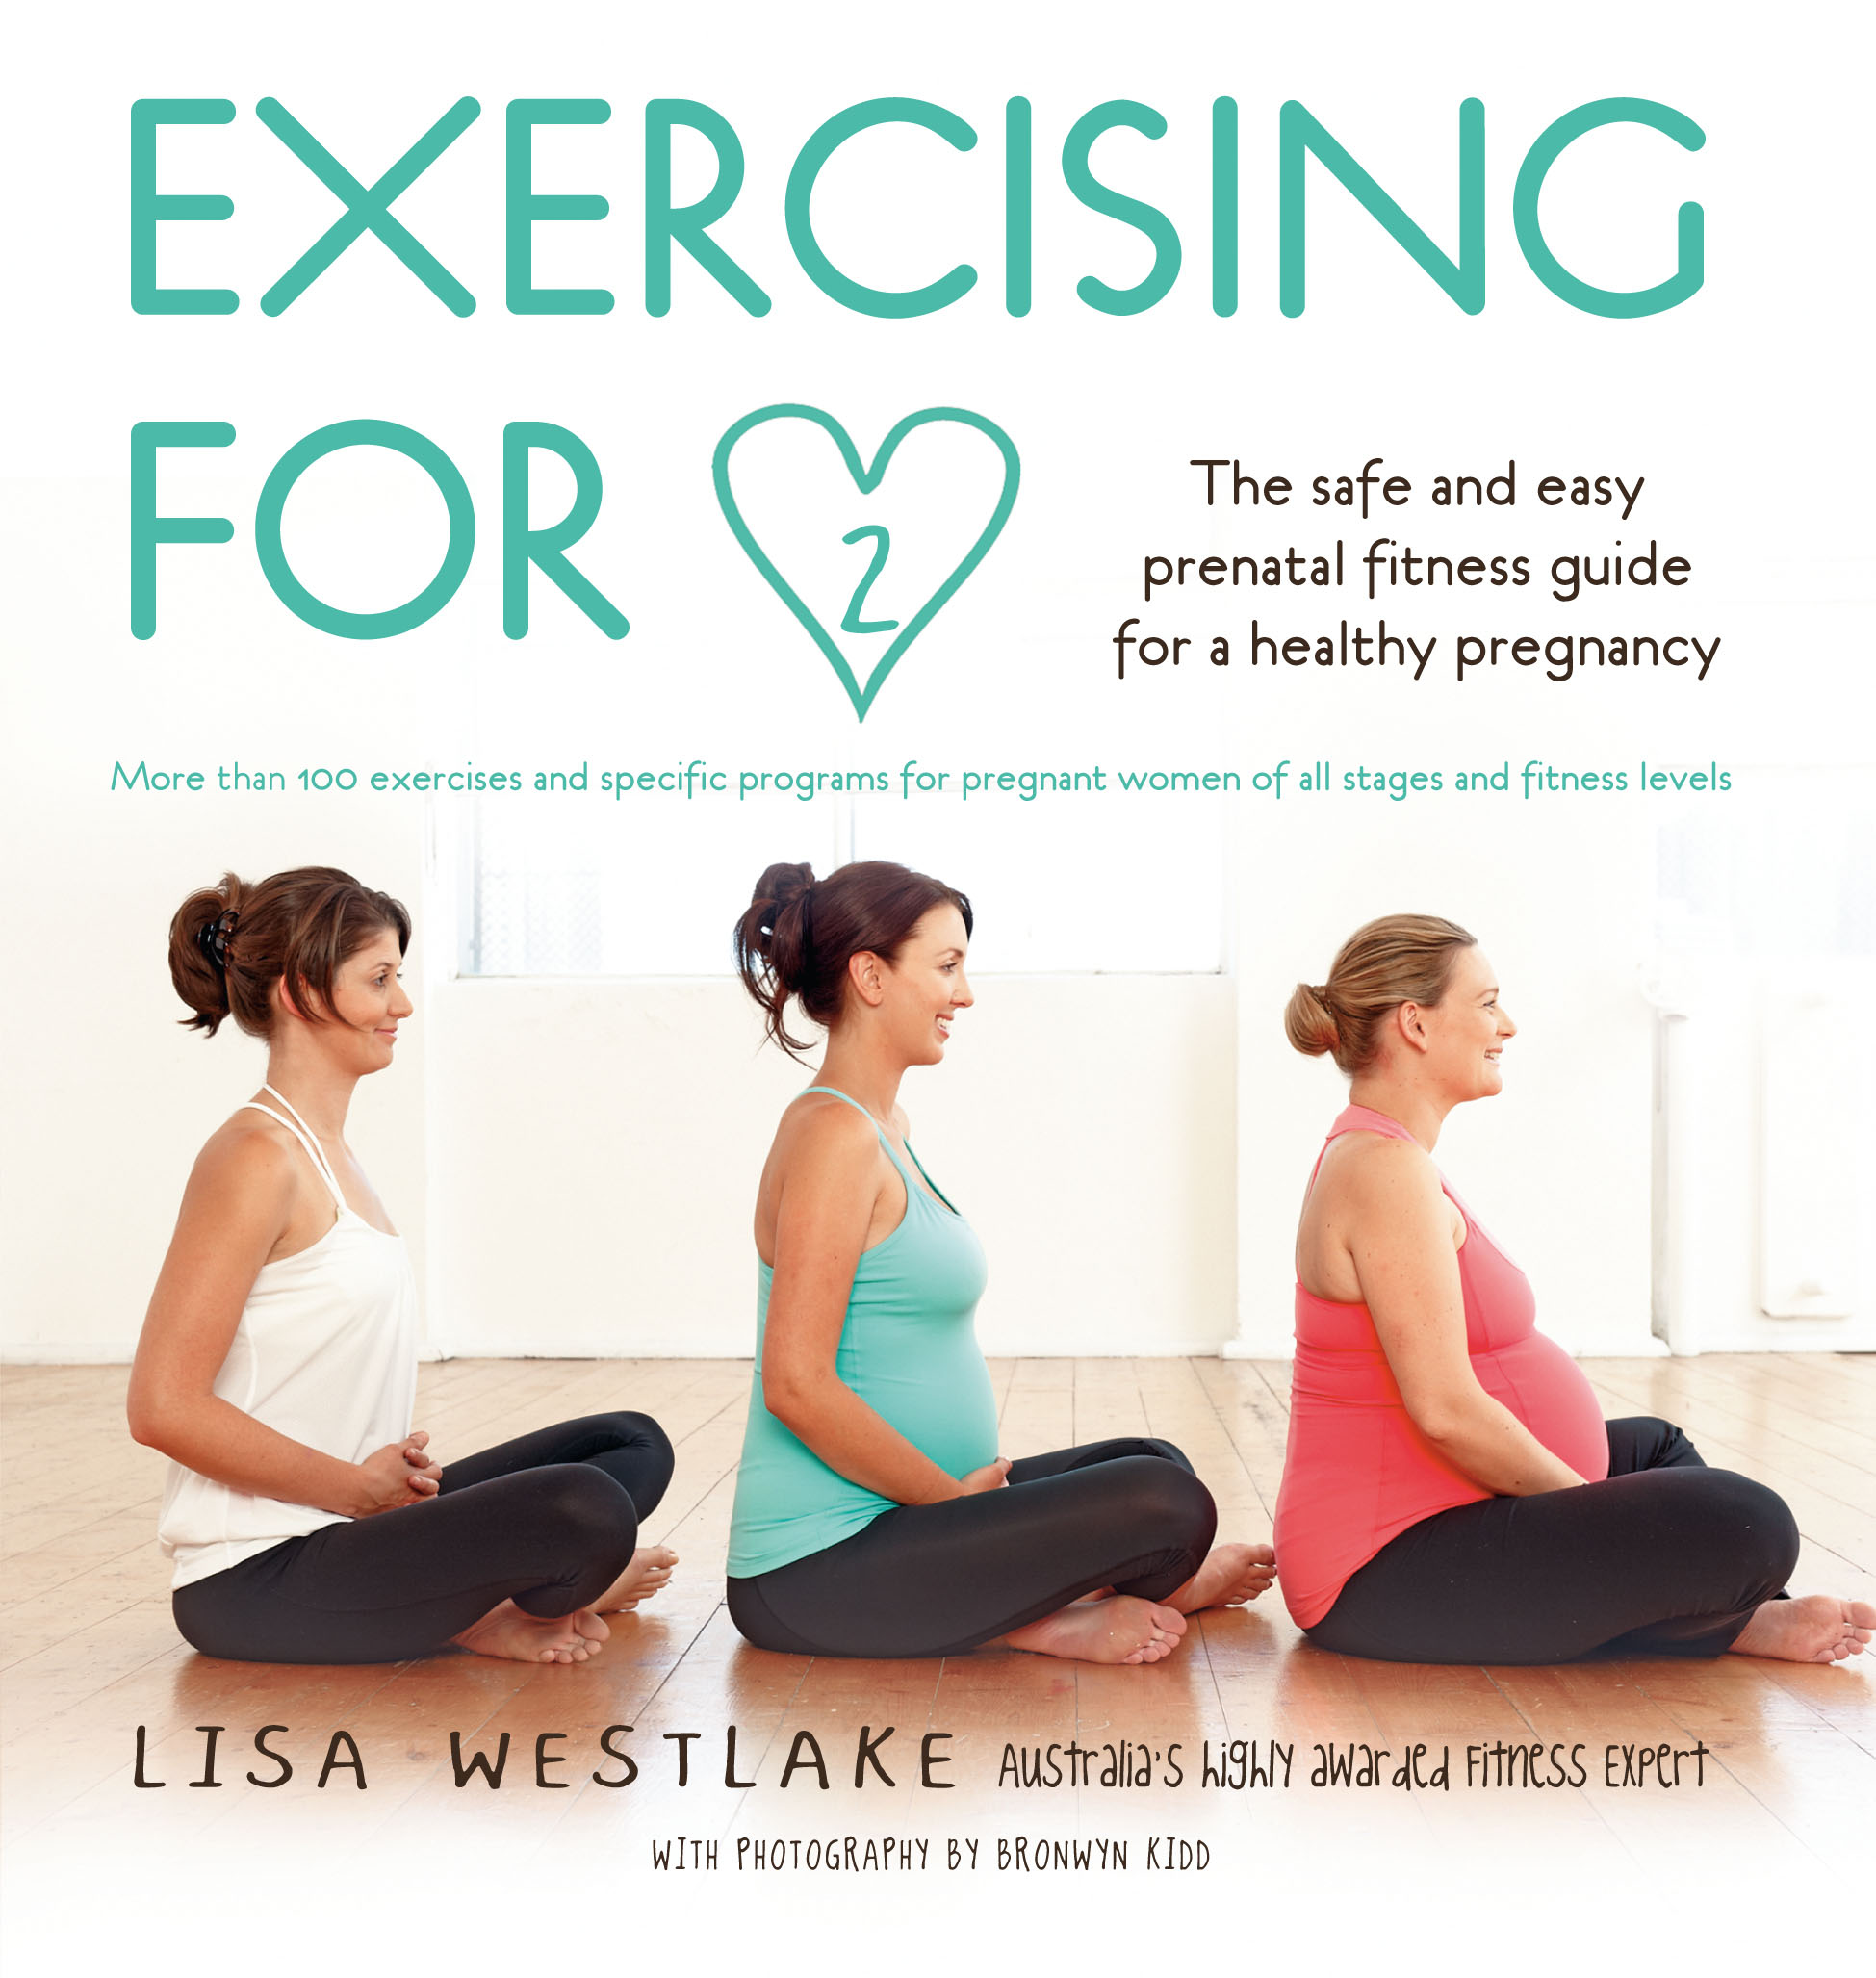 Exercising For Two The Safe And Easy Prenatal Fitness Guide A Healthy Pregnancy